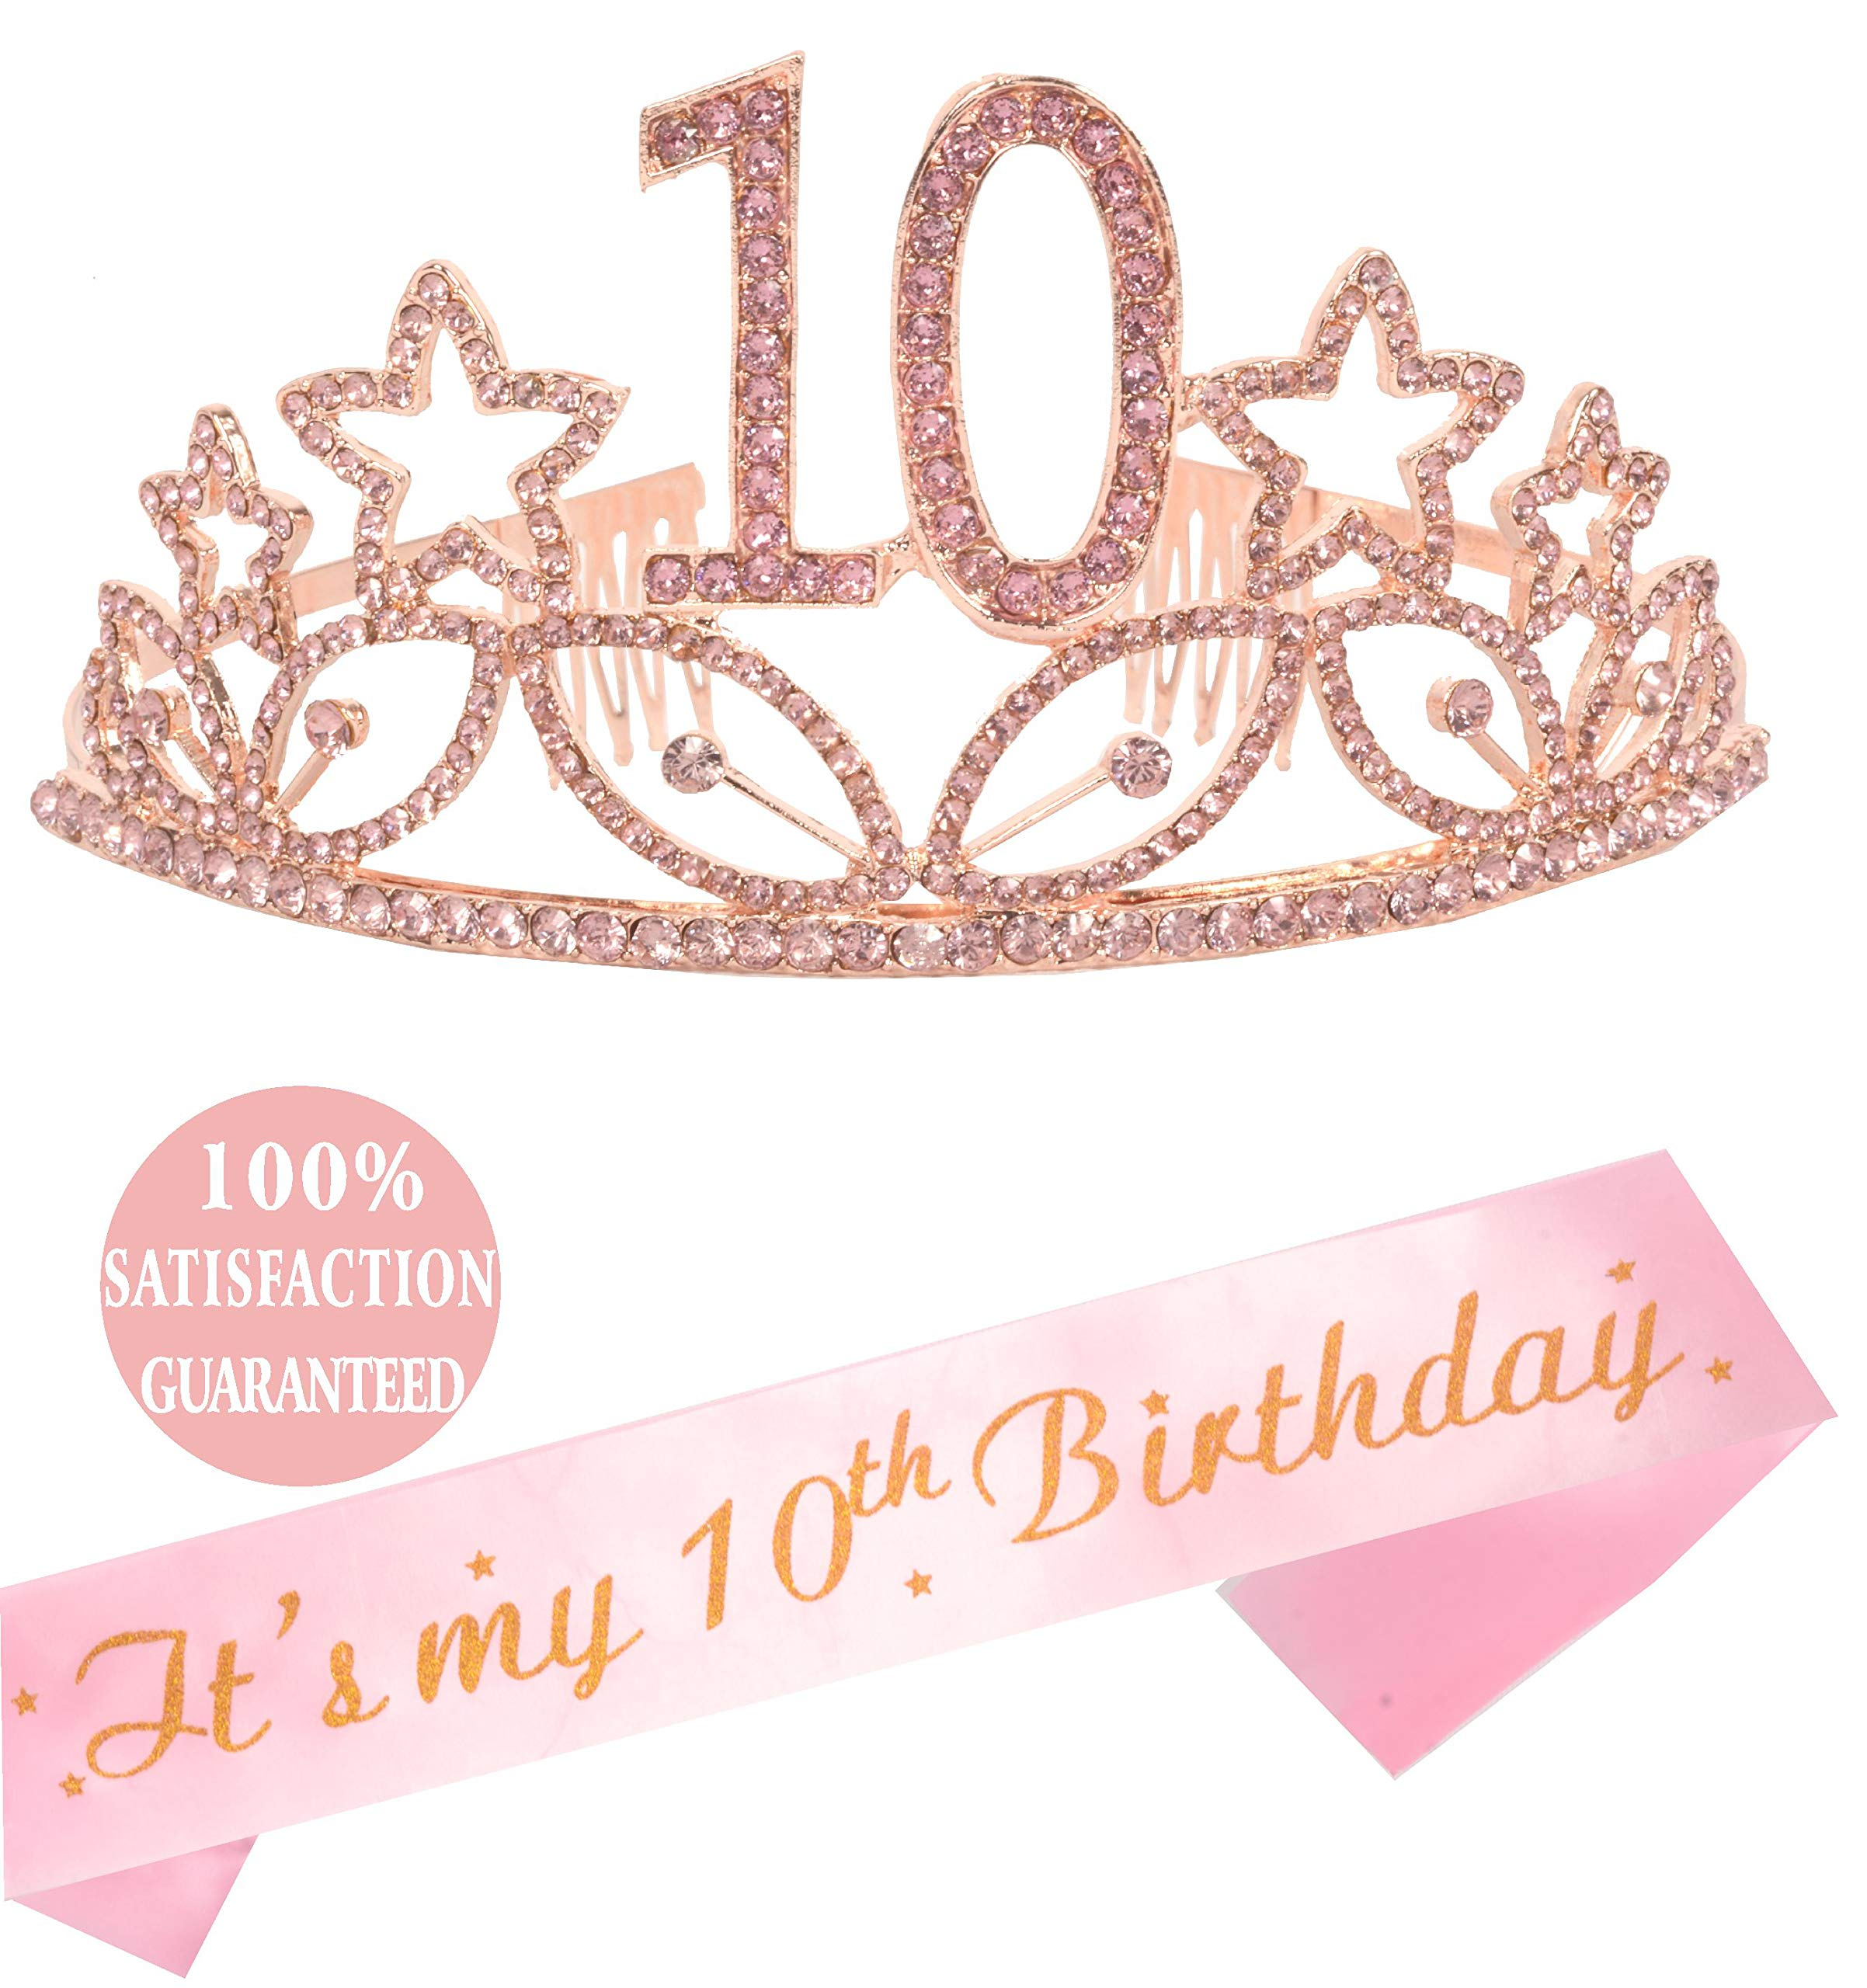 10th Birthday Tiara and Sash Pink, Happy 10th Birthday Party Supplies, It's My 10th Birthday and Crystal Tiara Birthday Crown for 10th Birthday Party Supplies and Decorations (Pink) by MEANT2TOBE